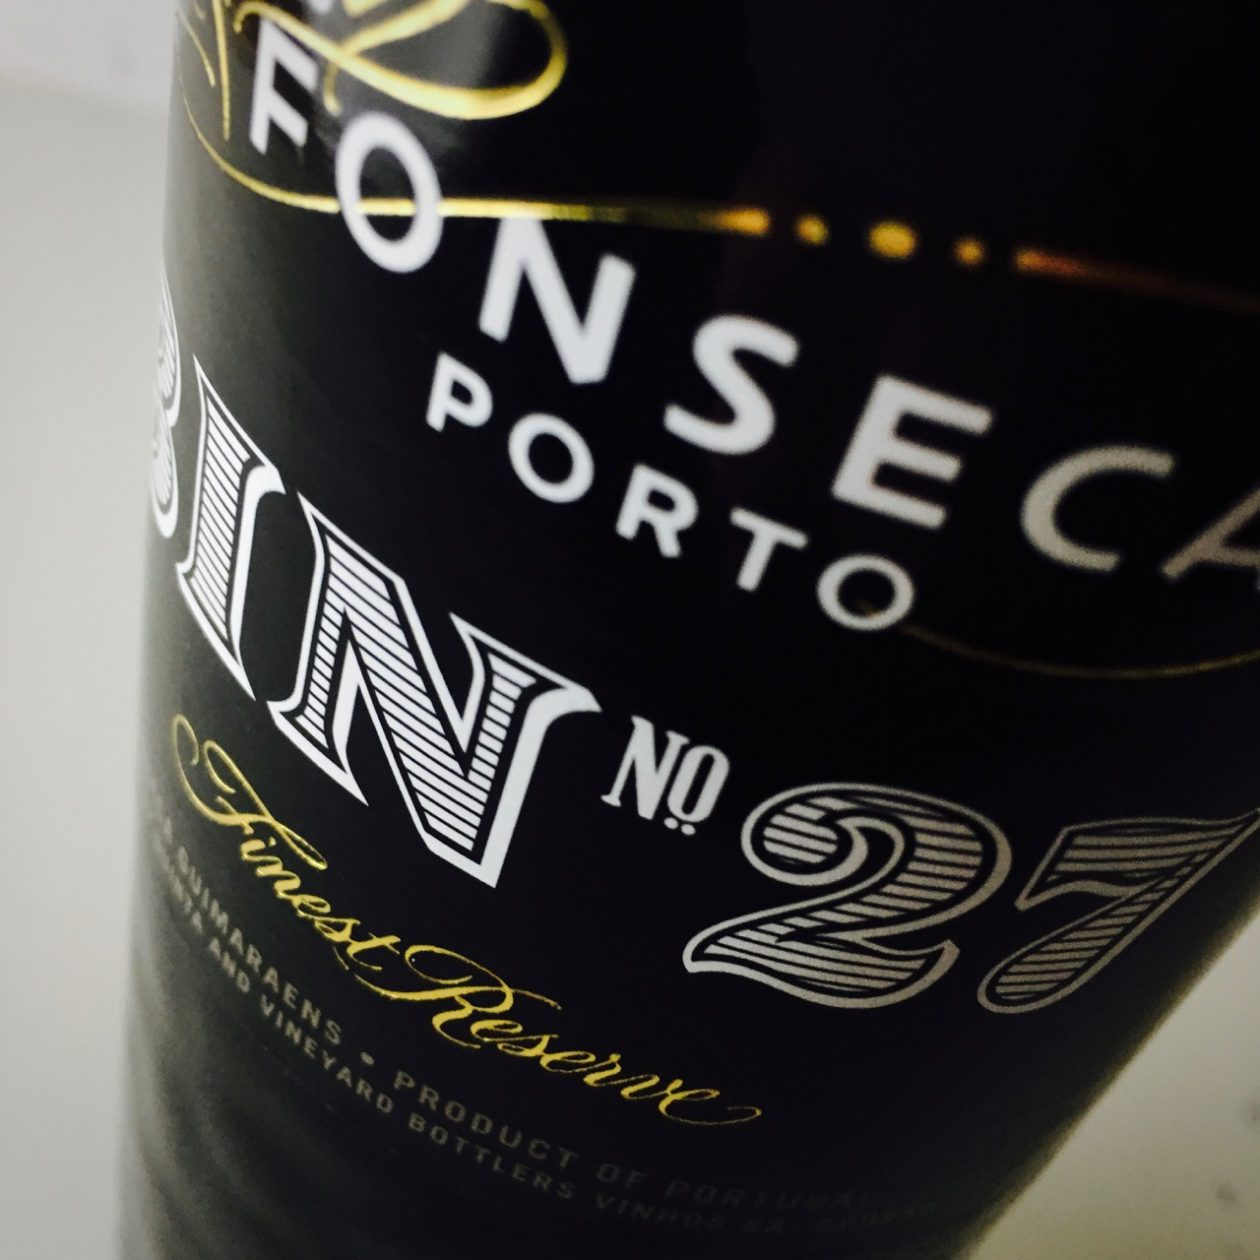 NV Fonseca Bin 27 Finest Reserve Port